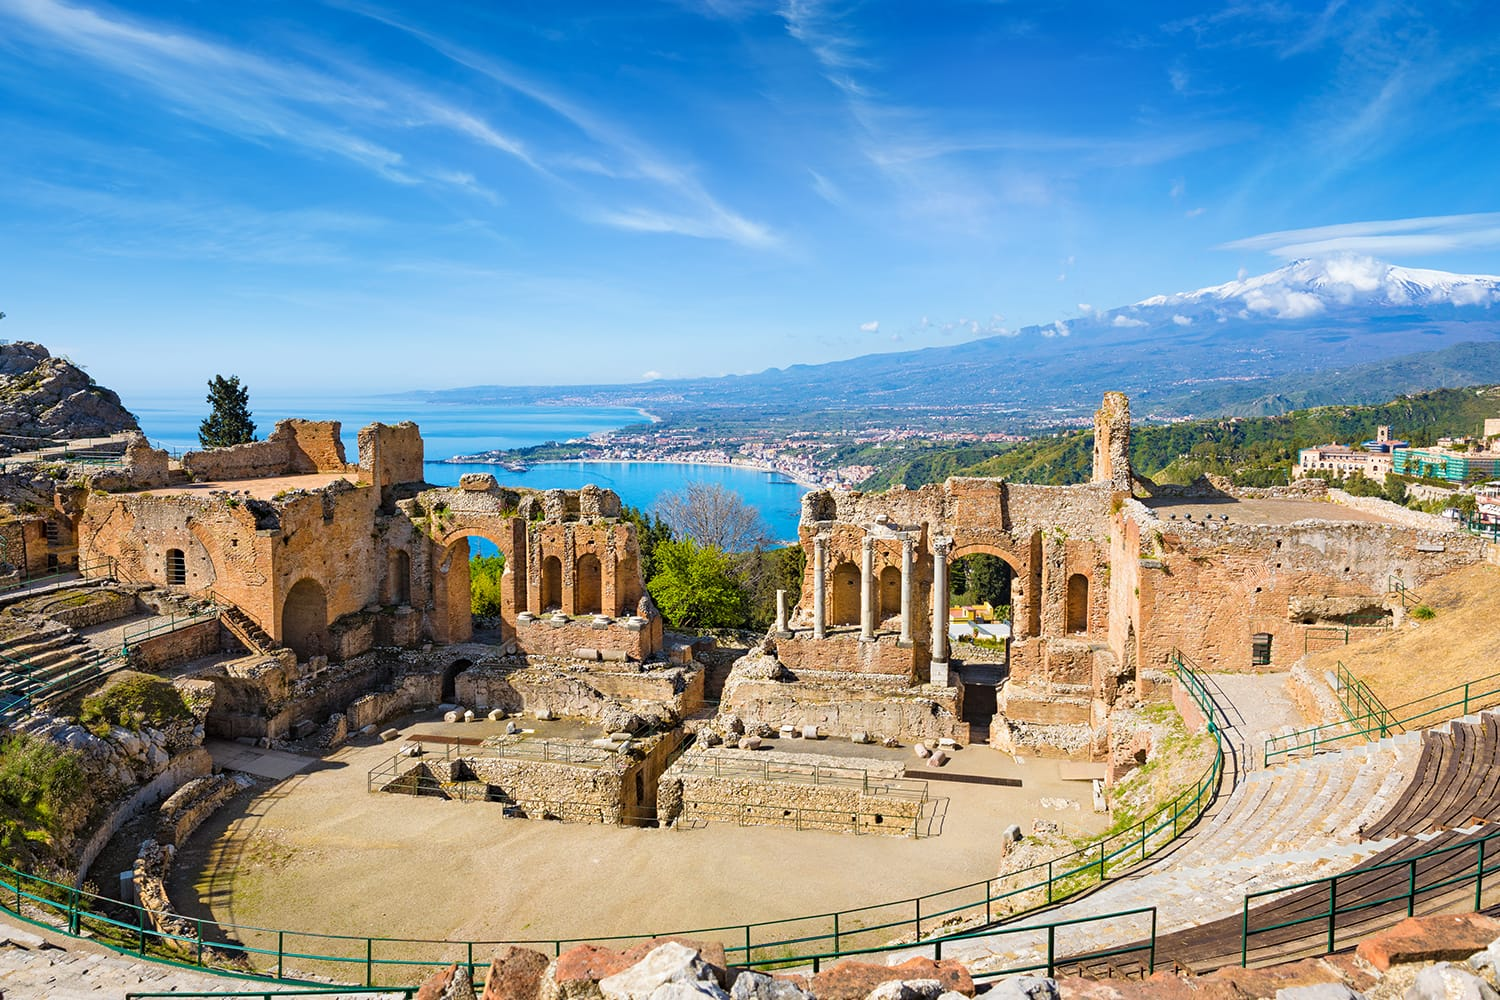 Ruins of Ancient Greek theatre in Taormina on background of Etna Volcano, Italy